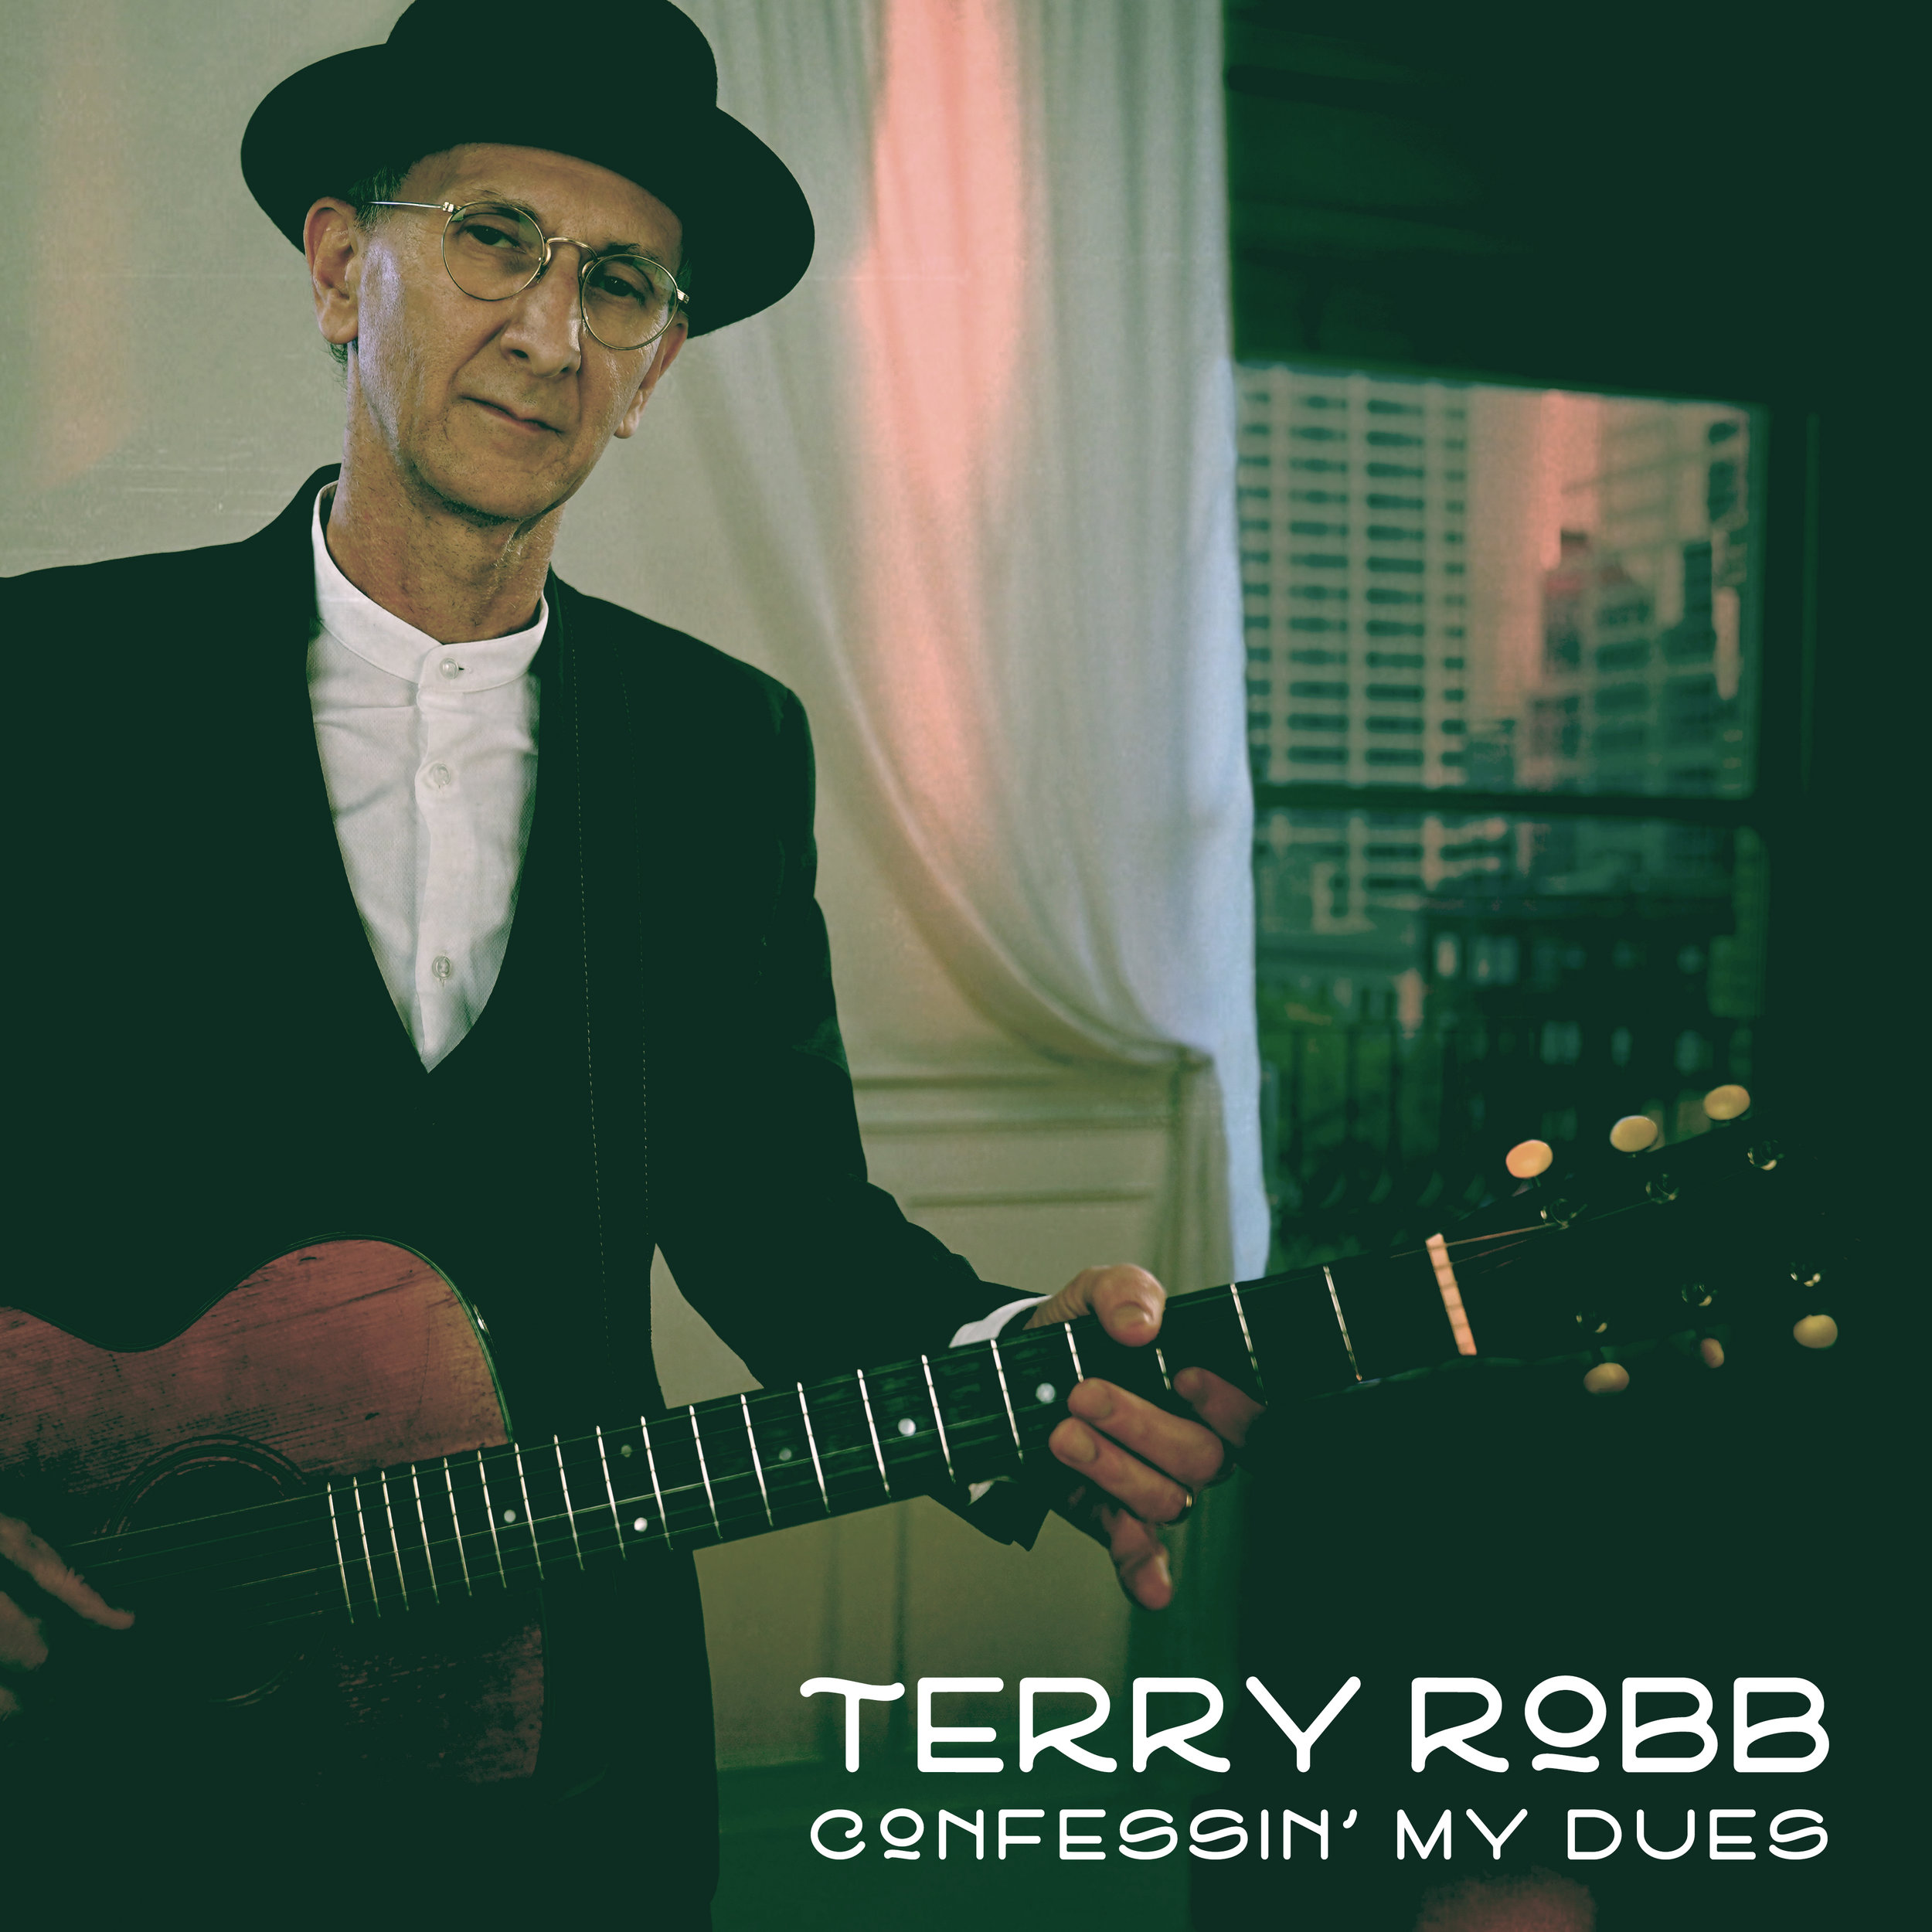 """Select Reviews - """"Simply breathtaking perfection…Terry Robb is one of our finest acoustic guitarists today. He's not just technically sublime; he plays with unrestrained passion you will feel deep down inside."""" - Living Blues magazine""""It is impossible to overstate the significance and sheer delight of this outstanding, clever and creative album from a true blues legend at the top of his game."""" - Blues Matters magazine""""Robb demonstrates blues' expansiveness…and it's difficult to think of anyone who could pull that off as well."""" - Vintage Guitar magazine""""As if to remind us of his virtuosity, he opens with a jaw-dropping instrumental, """"Butch Holler Stomp."""" He follows that with a very different but equally amazing """"Still On 101."""" - Toronto Blues Society"""